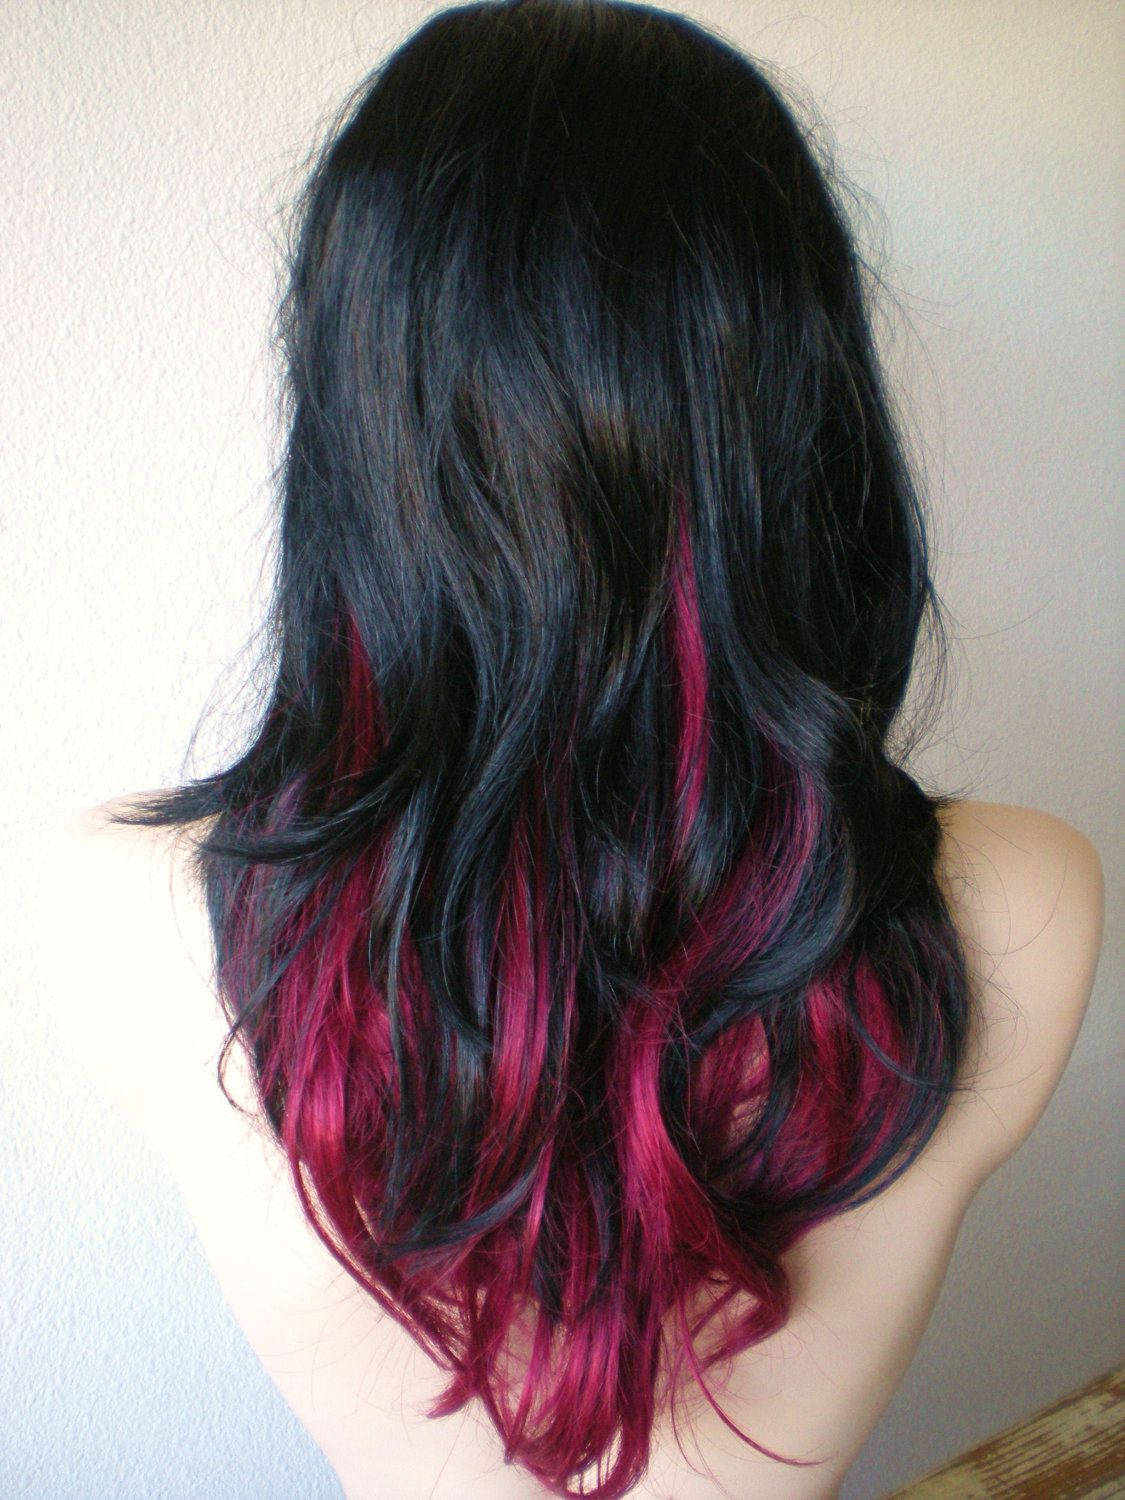 ombre with pink and black hair | hairstyles in 2019 | red